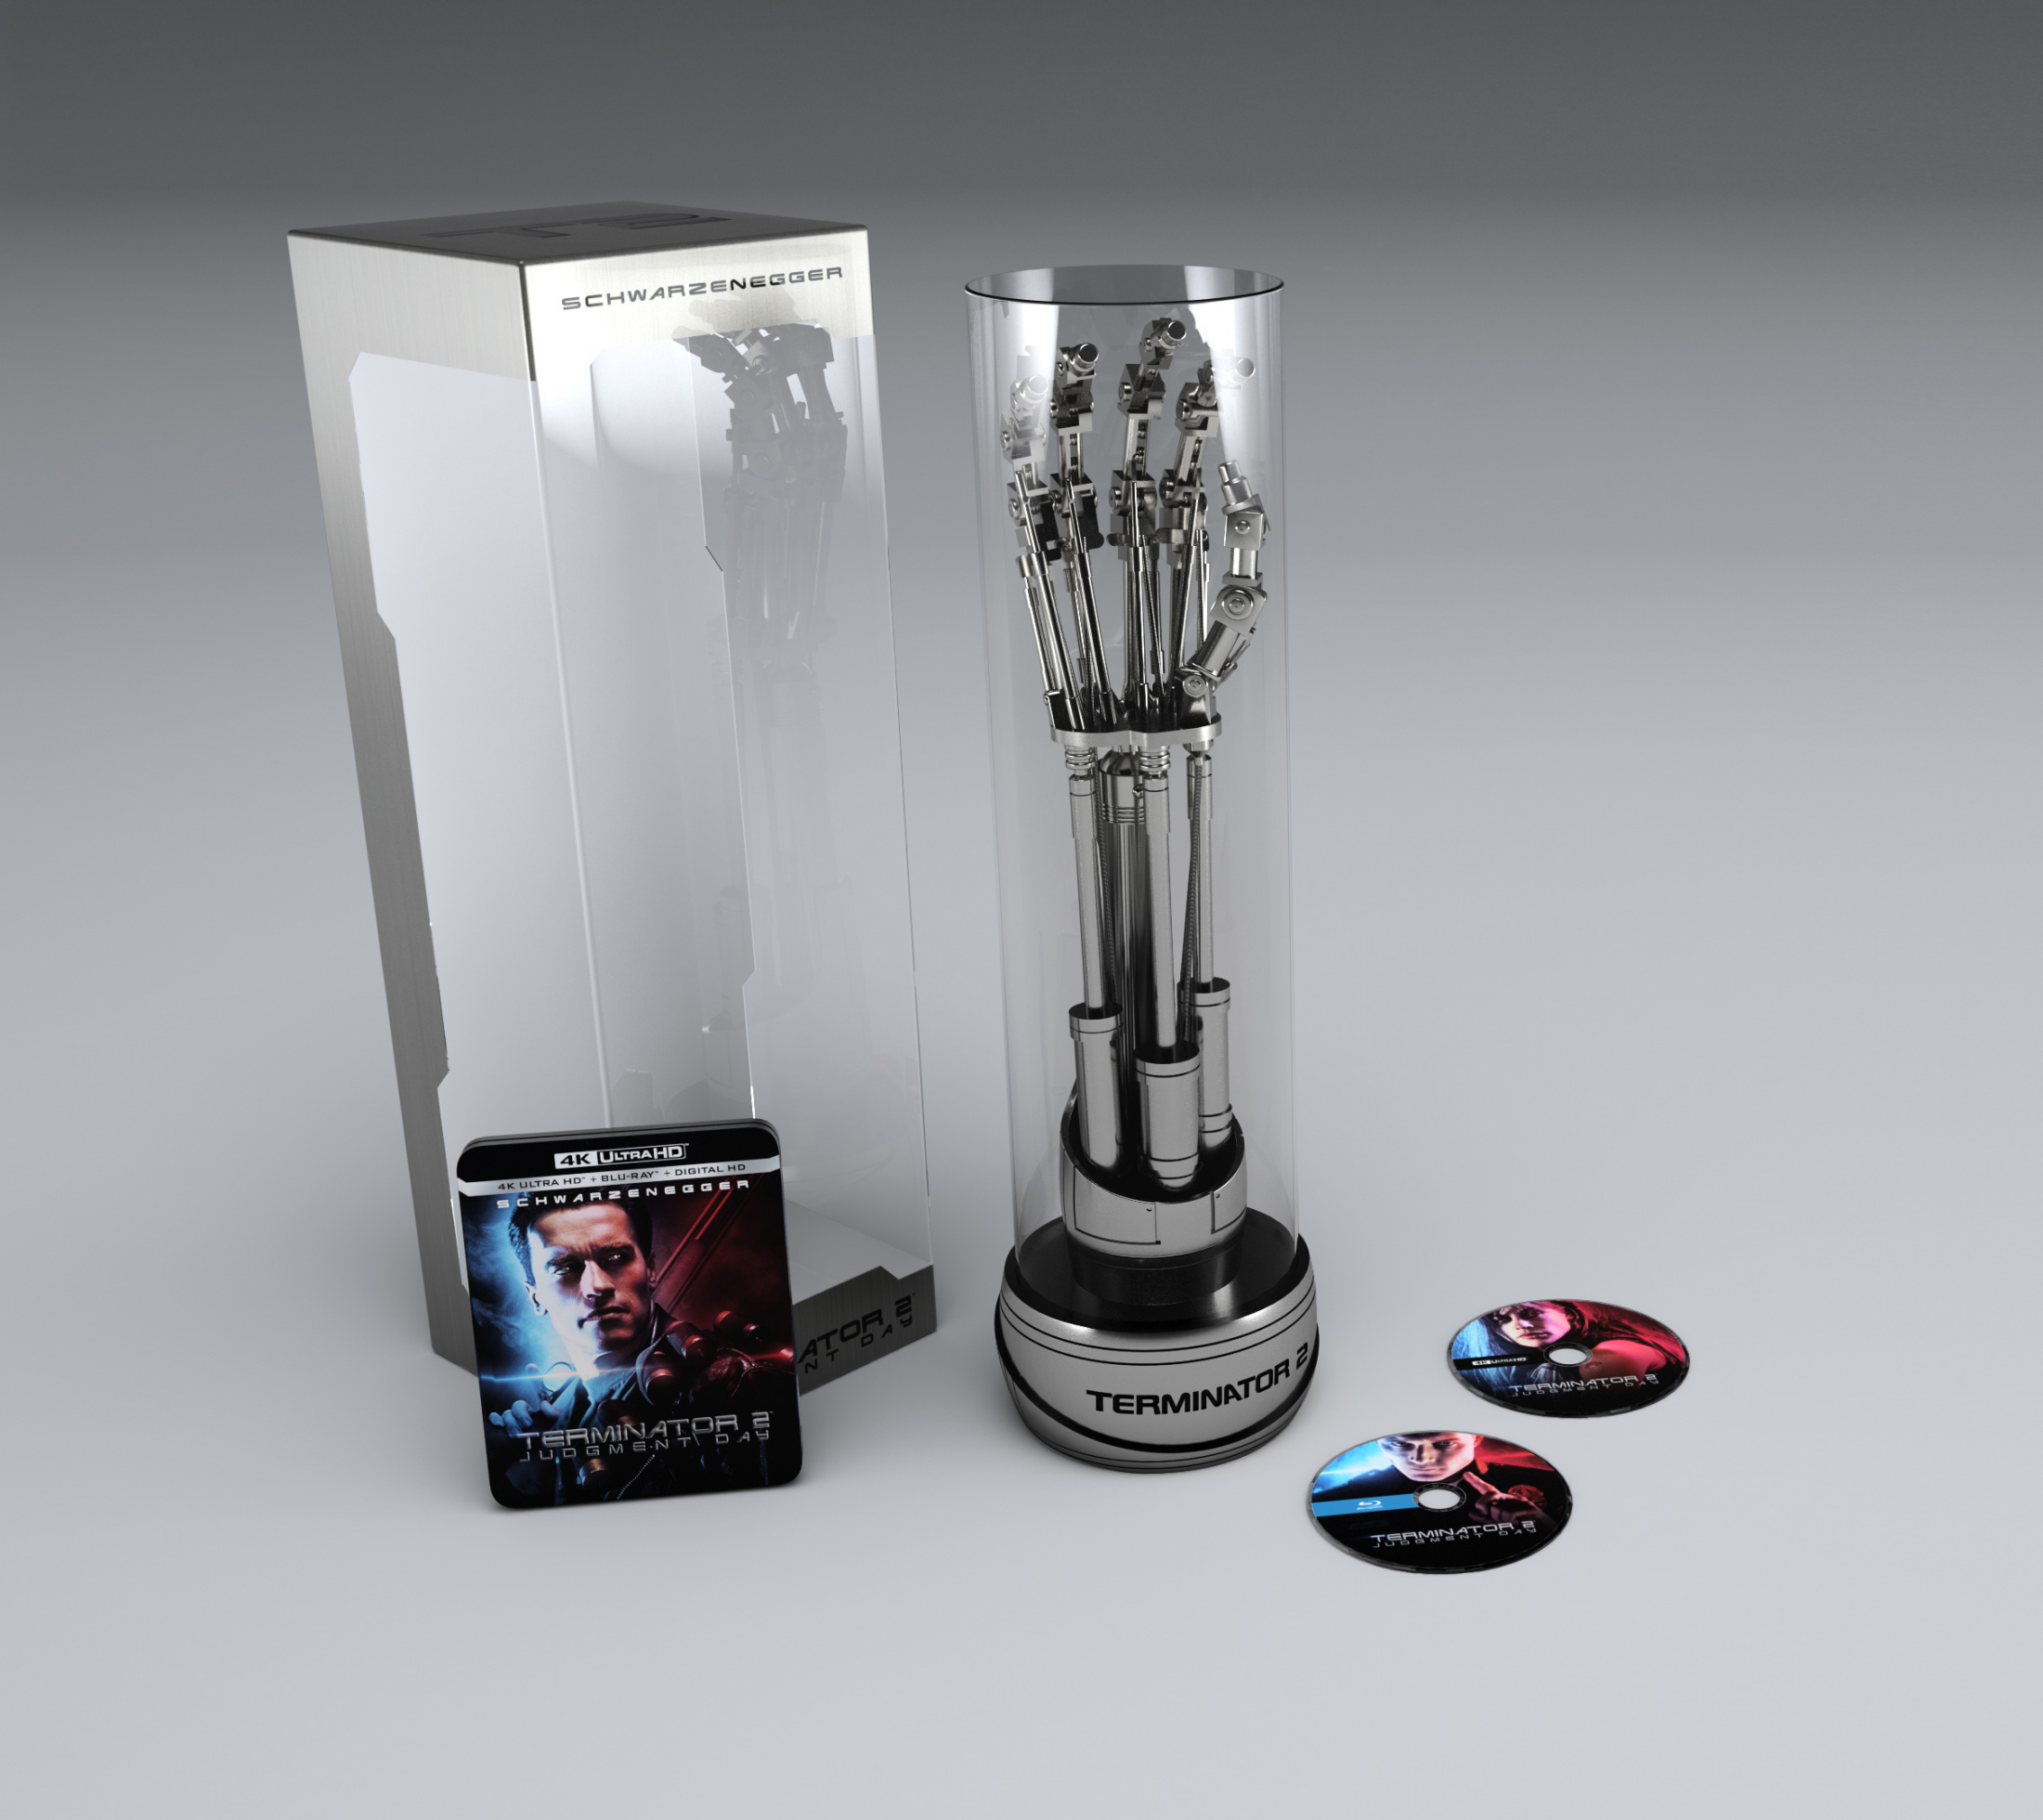 Thumbnail for Terminator 2: Judgment Day 4K UHD - Endoarm Collector's Edition